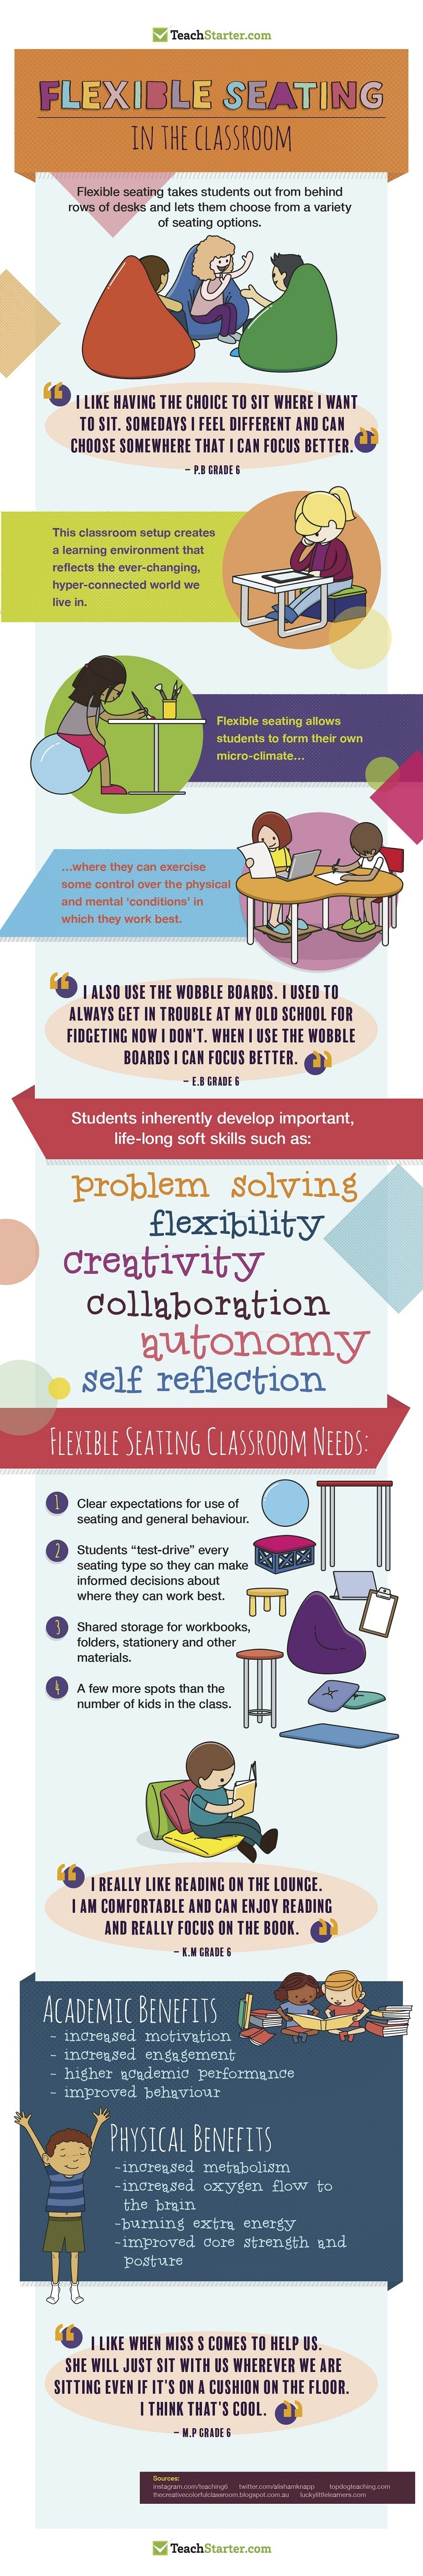 Flexible Seating in the Classroom Infographic